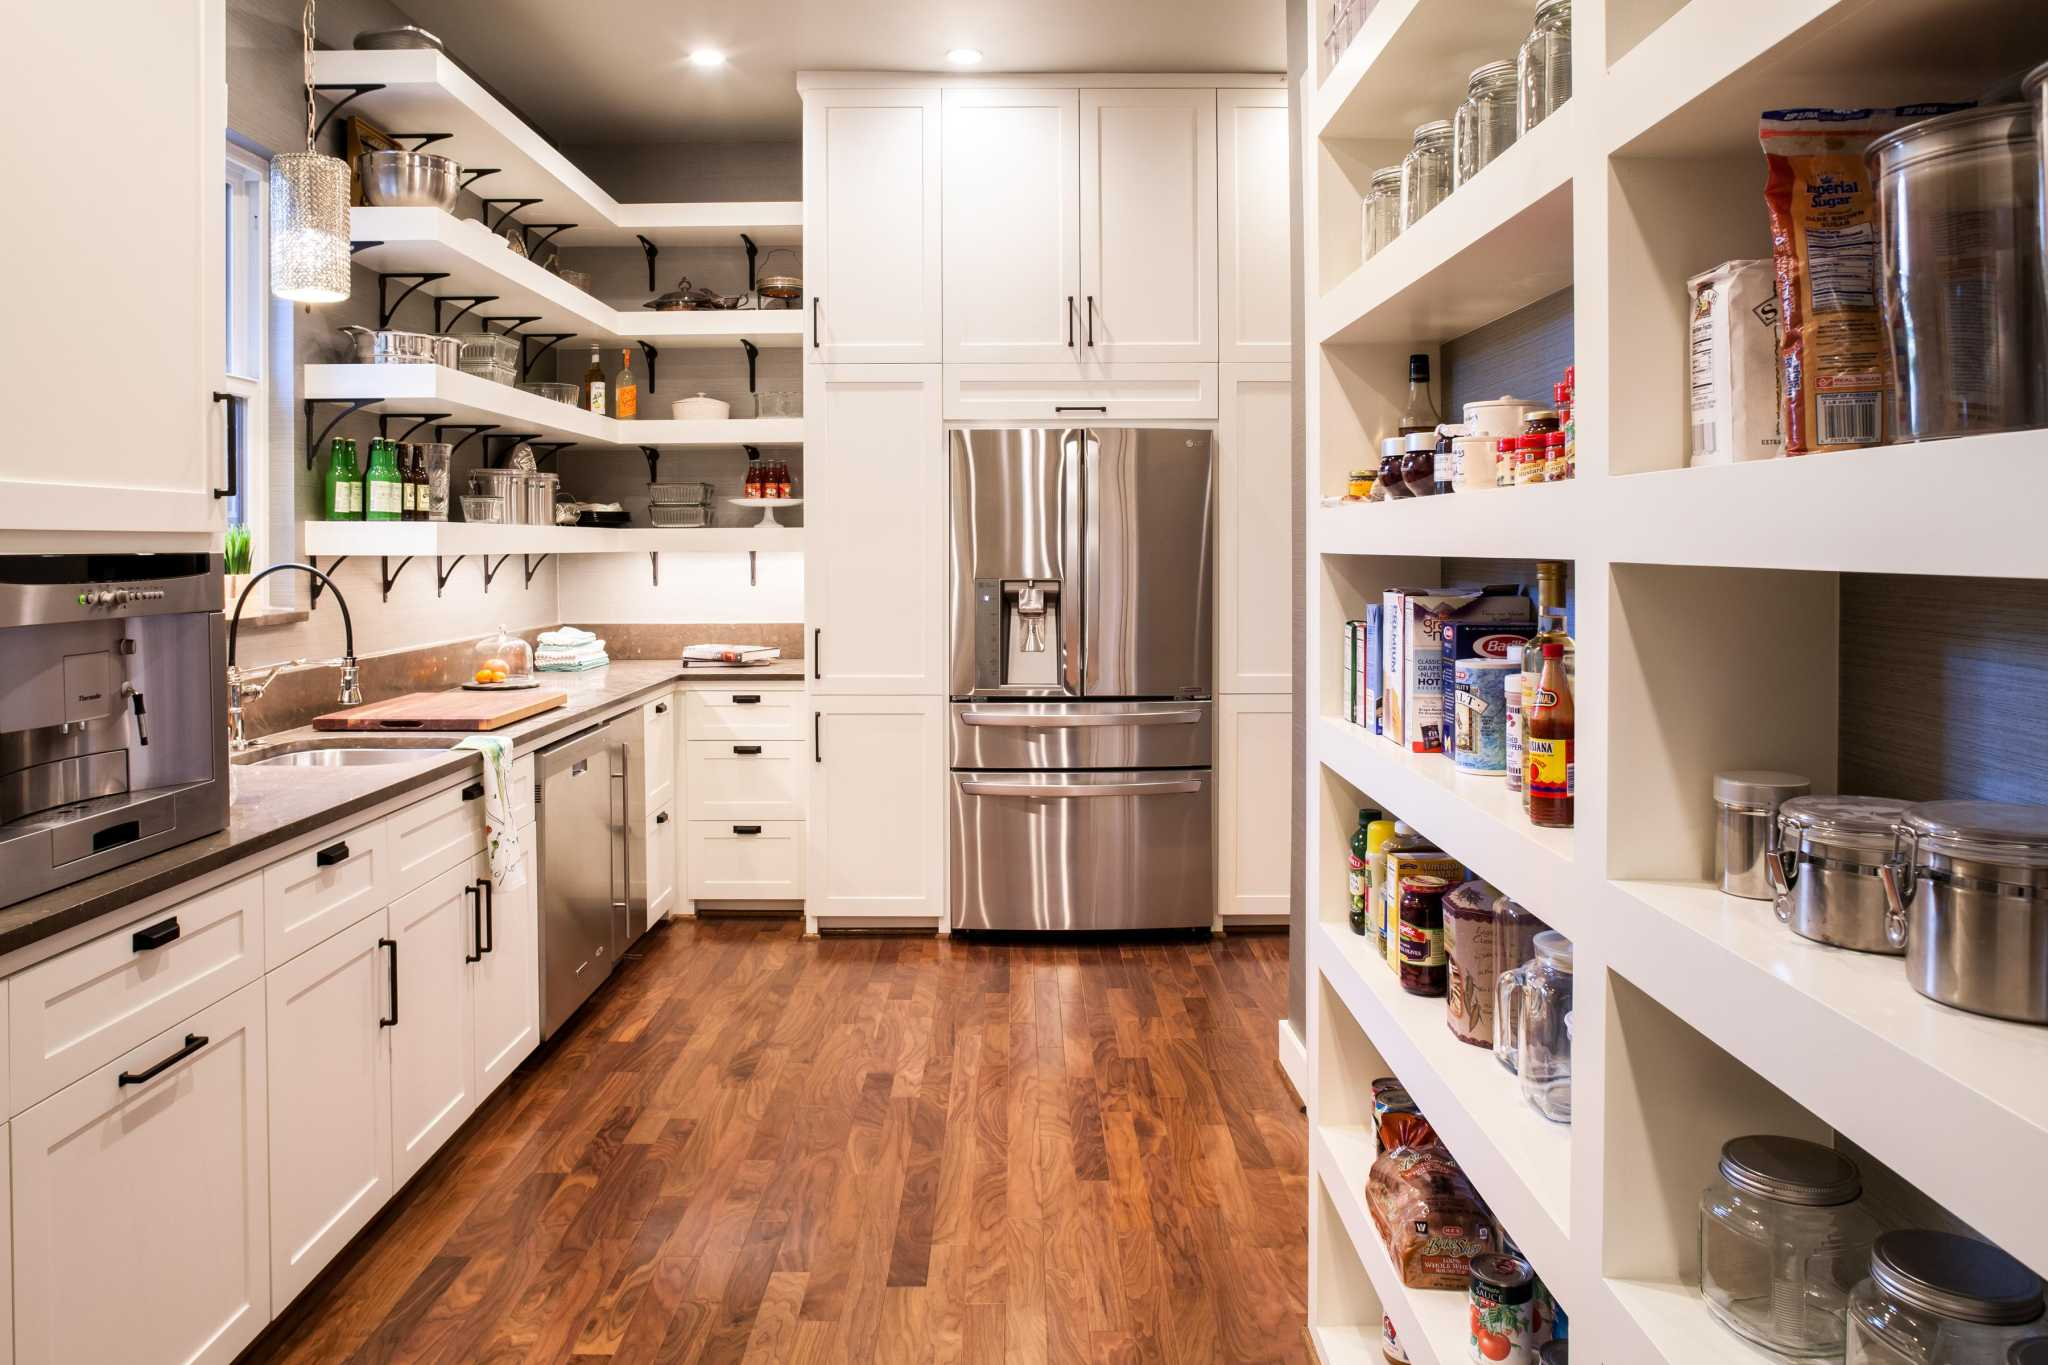 High End Pantries Are Now A Second Kitchen With Extra Appliances Work Stations Gift Wrapping Areas And More Expressnews Com